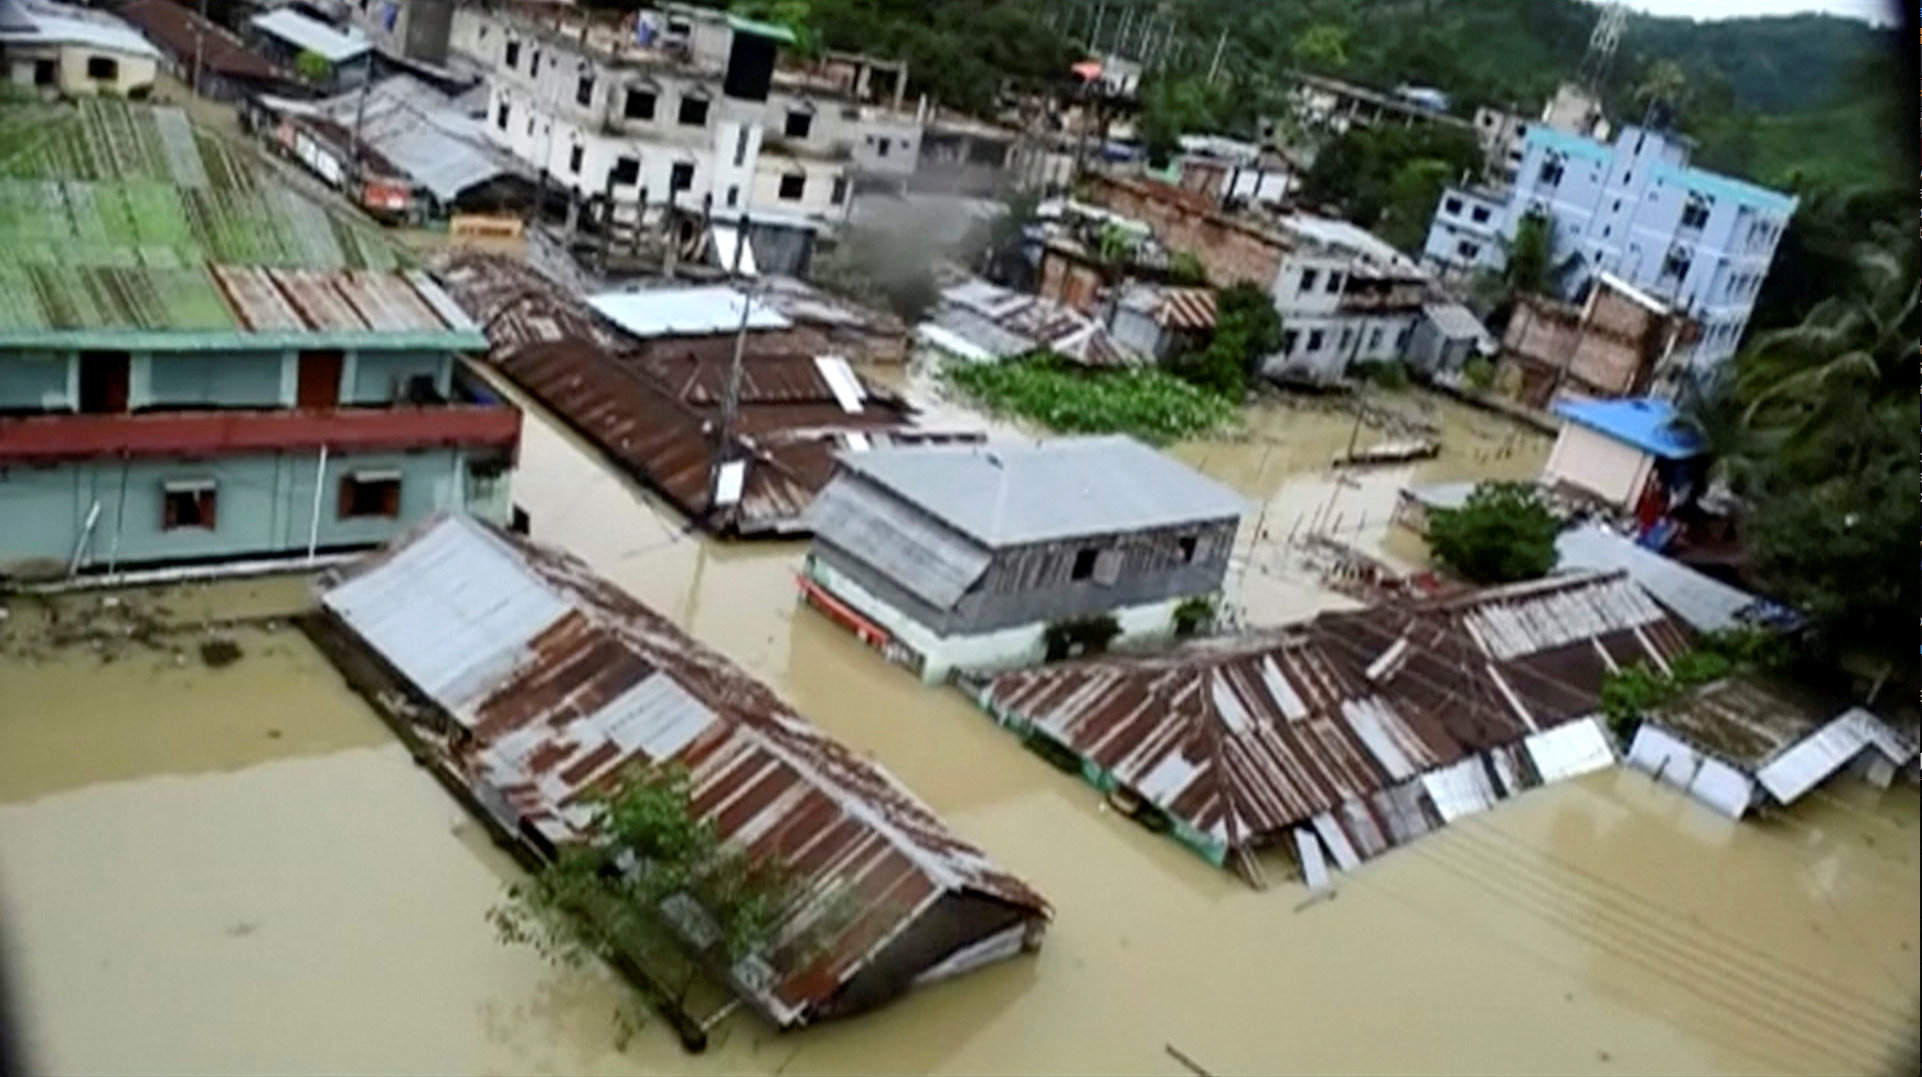 An aerial view showing the town half-submerged in floodwaters following landslides triggered by heavy rain in Khagrachari, Bangladesh, in this still frame taken from video June 13, 2017. REUTERS/REUTERS TV